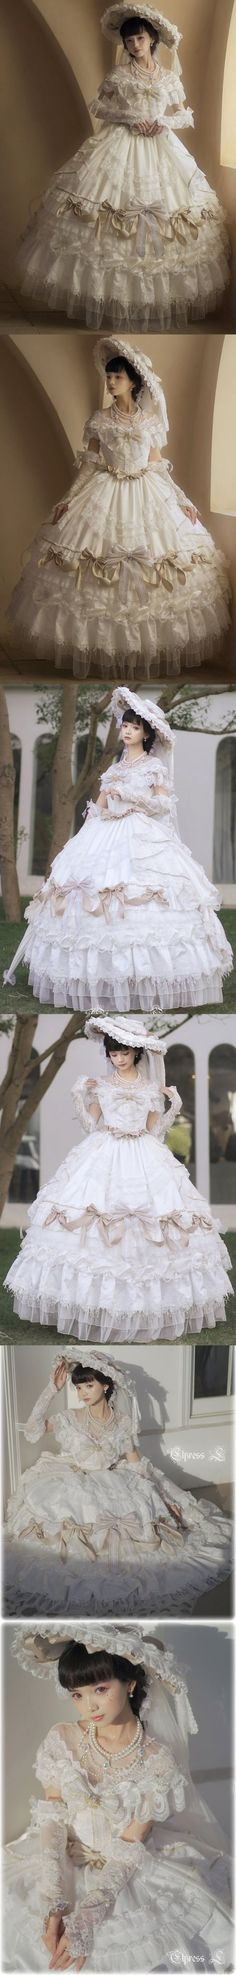 Real Costumes, Tomorrow Is Another Day, Casual Attire, Jacquard Fabric, Lolita Dress, Veil, Bodice, Princess, Wedding Dresses